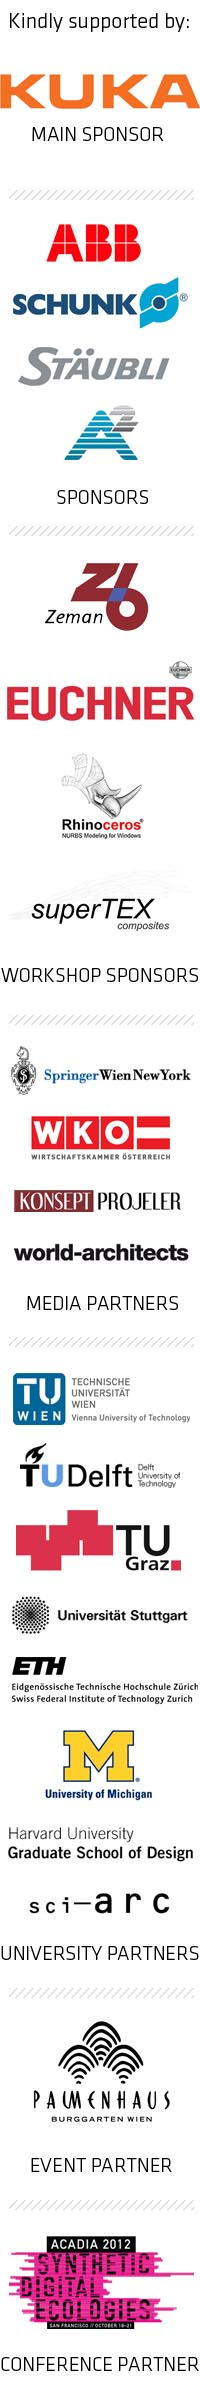 RobArch2012 Sponsors